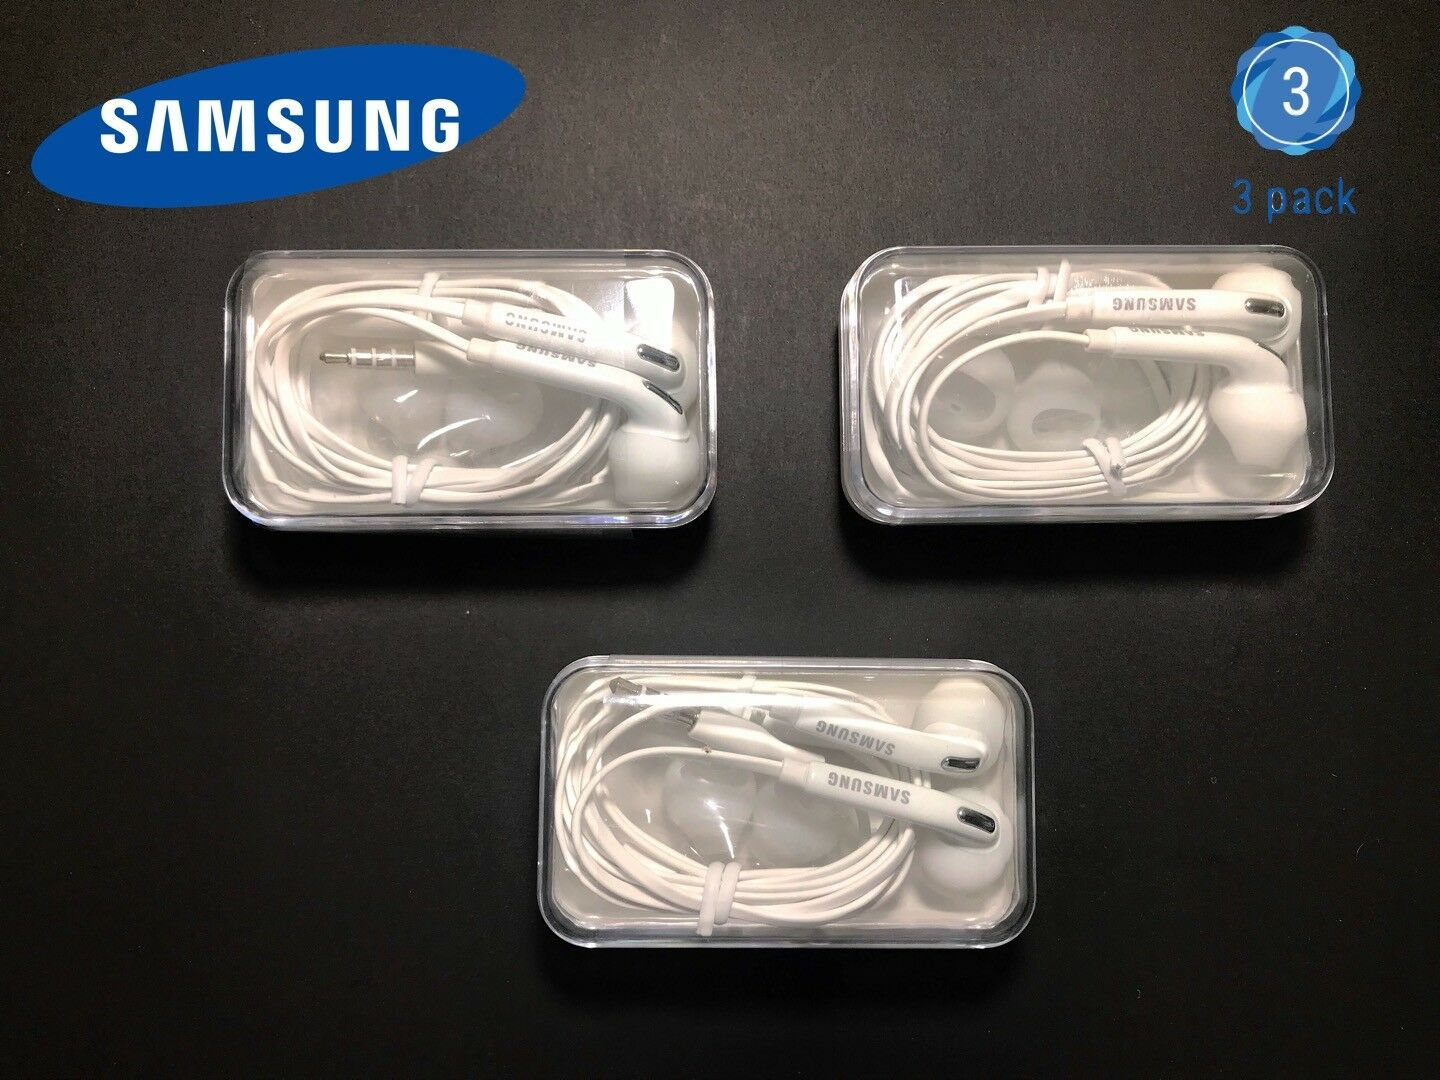 3x OEM Original Samsung Galaxy S6 Edge+ Note 5 Headset Earph